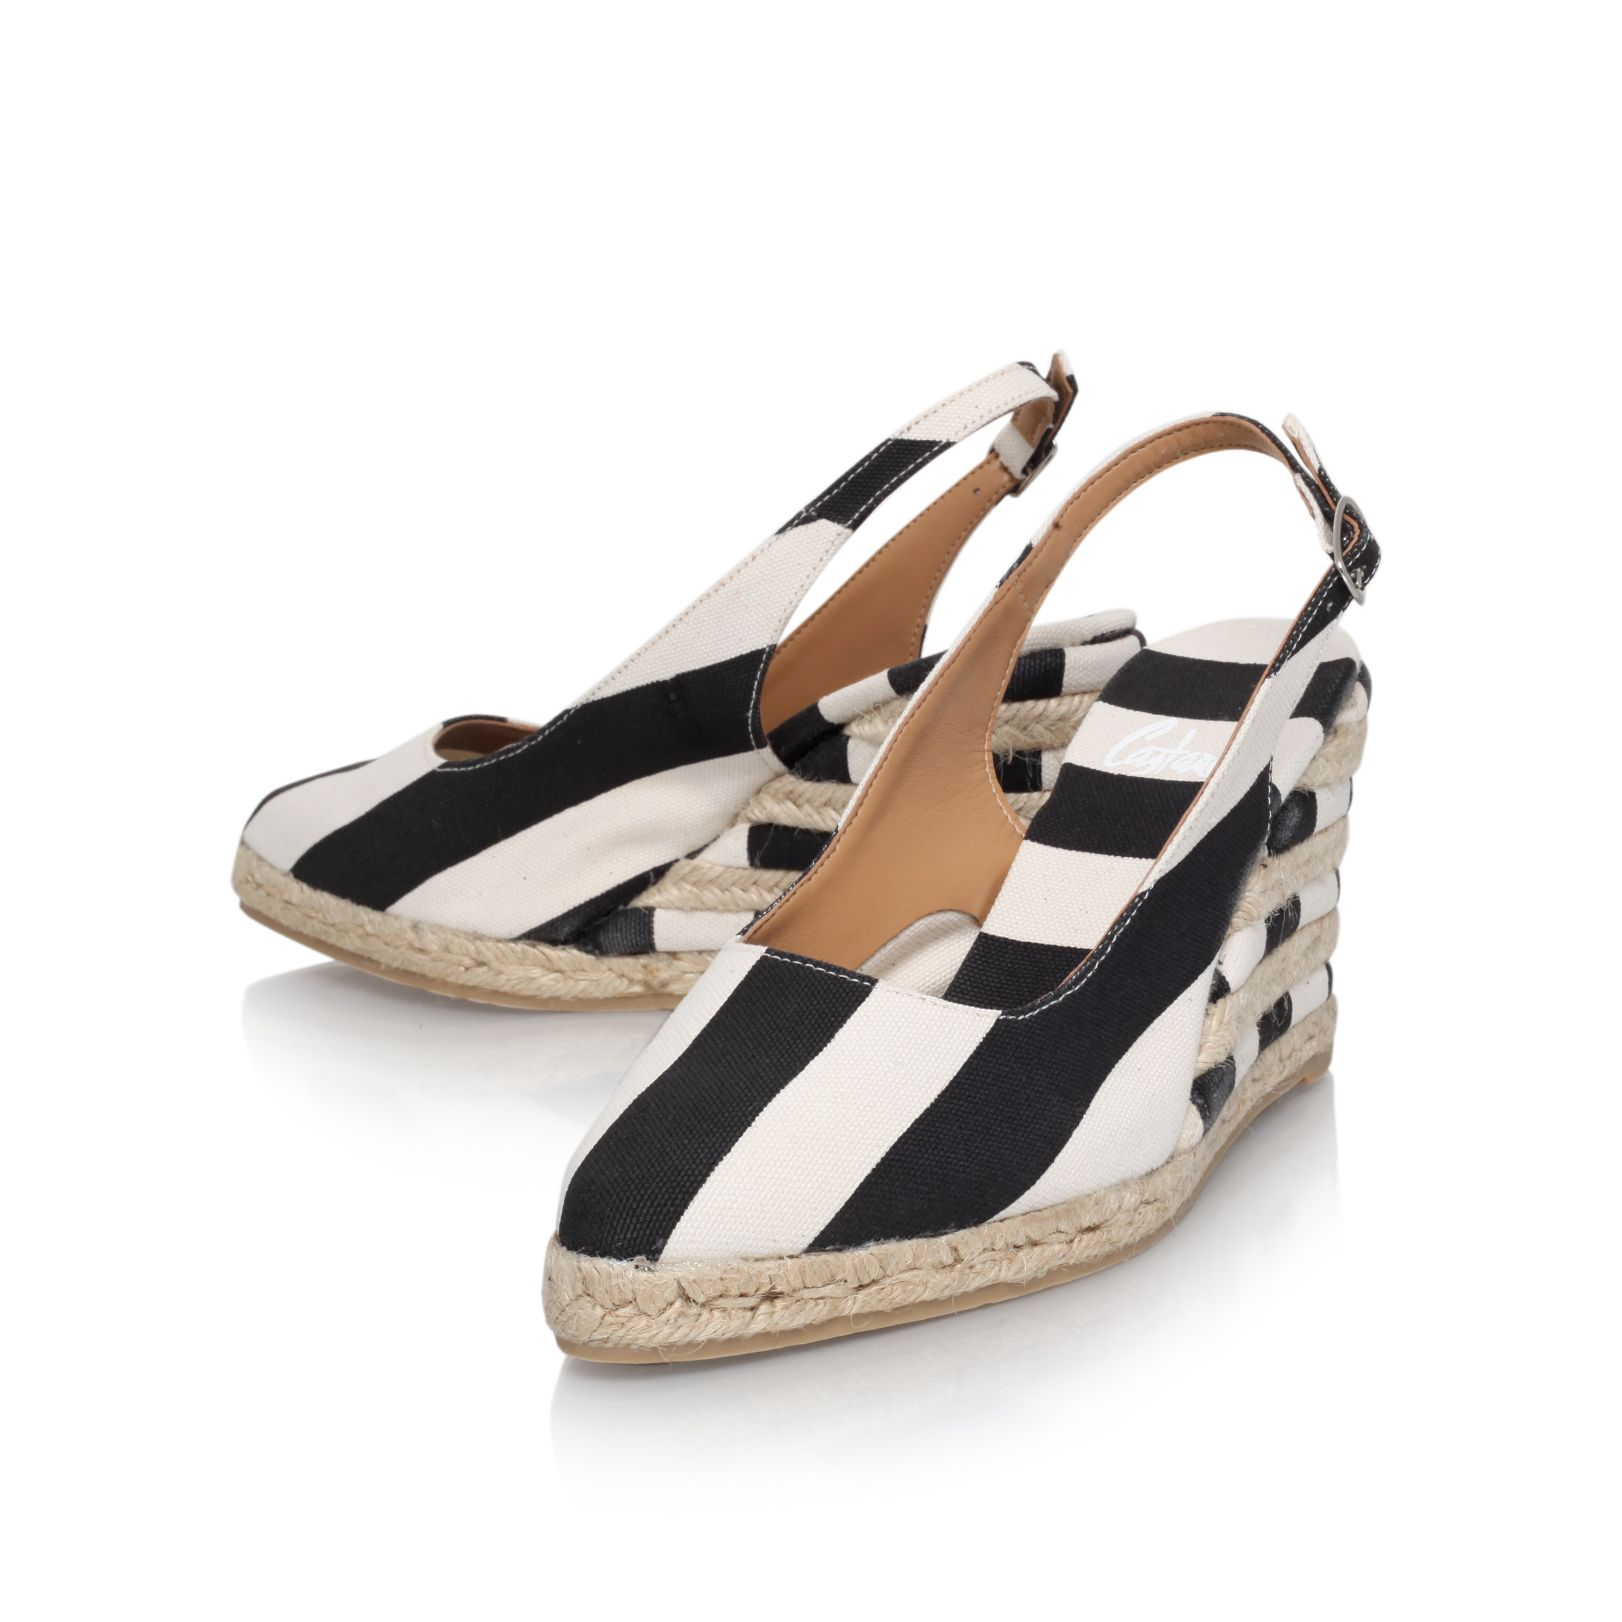 Jana h8 mid heel wedge sandals